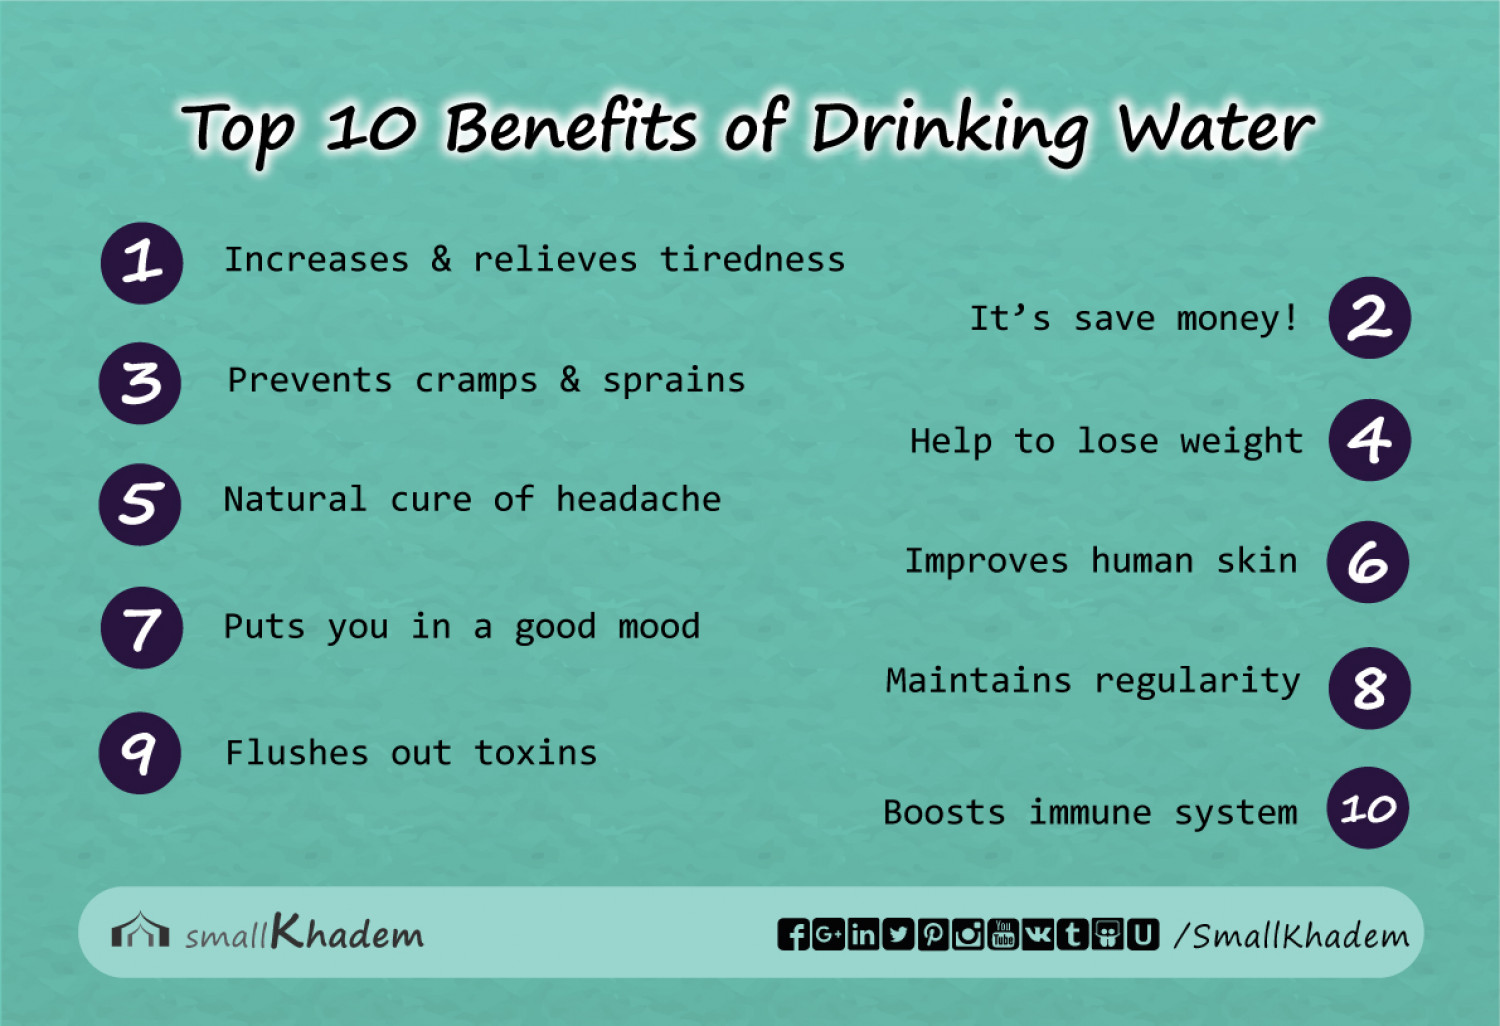 Top 10 Benefits of Drinking Water Infographic